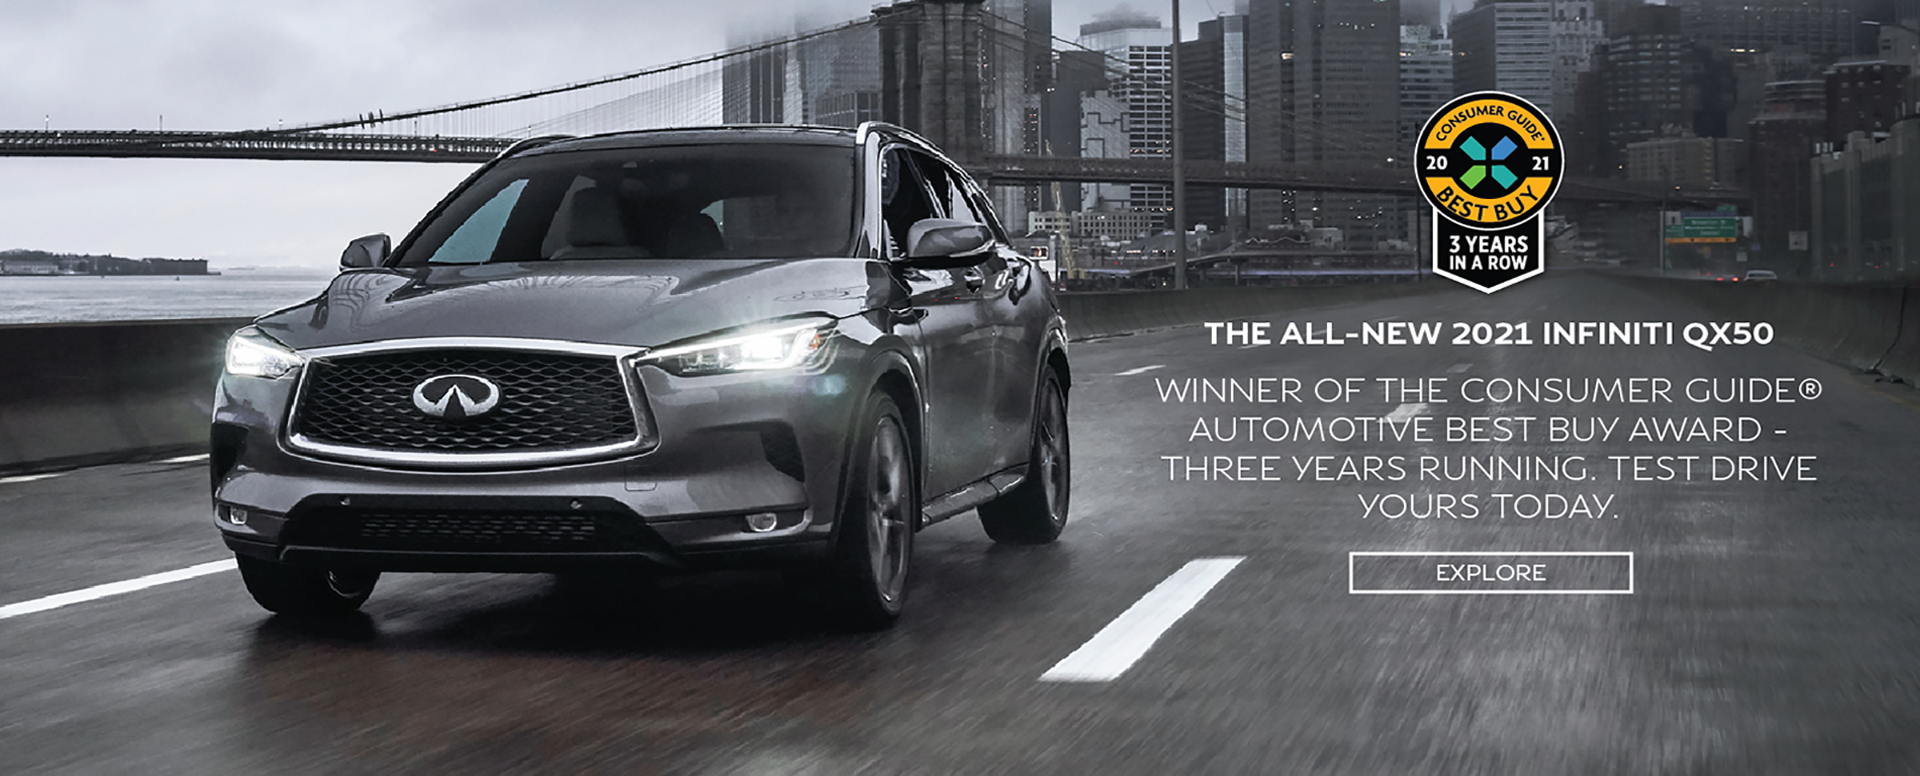 The all-new 2021 INFINITI Q50. Winner of the consumer guide automotive best buy award three years running. Test drive yours today. Click to explore.